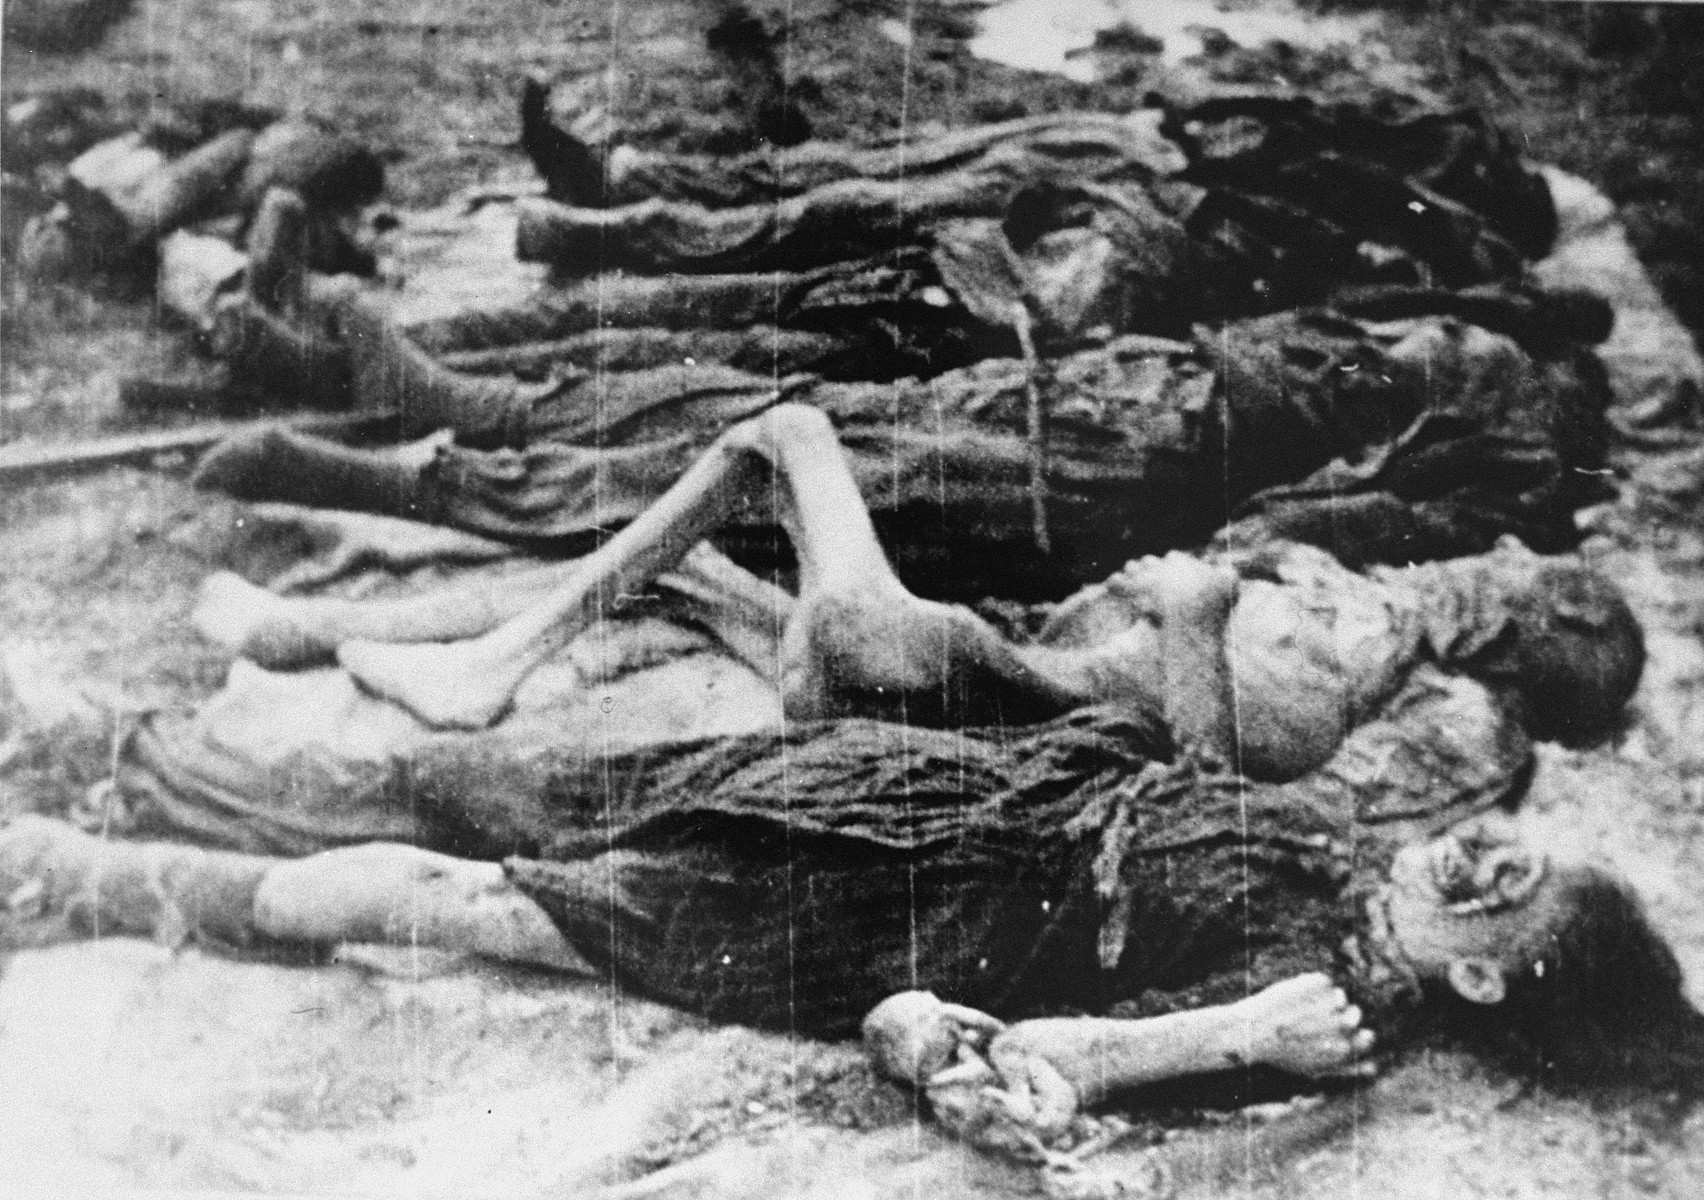 Corpses of murdered victims in Auschwitz.